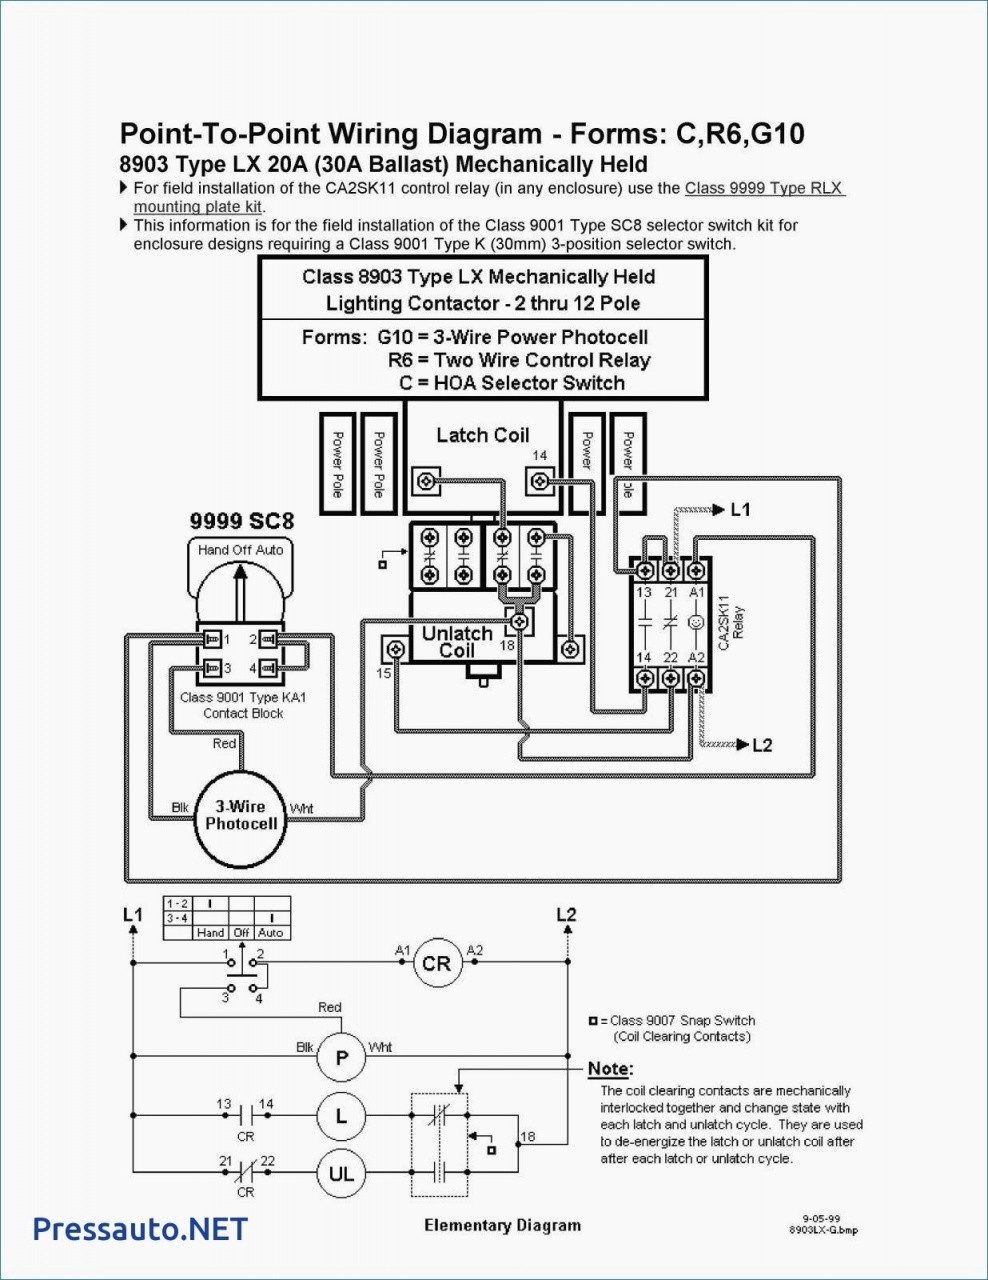 lighting contactor wiring diagram with photocell square d 8903 lighting contactor wiring diagram from lighting contactor wiring diagram with photocell